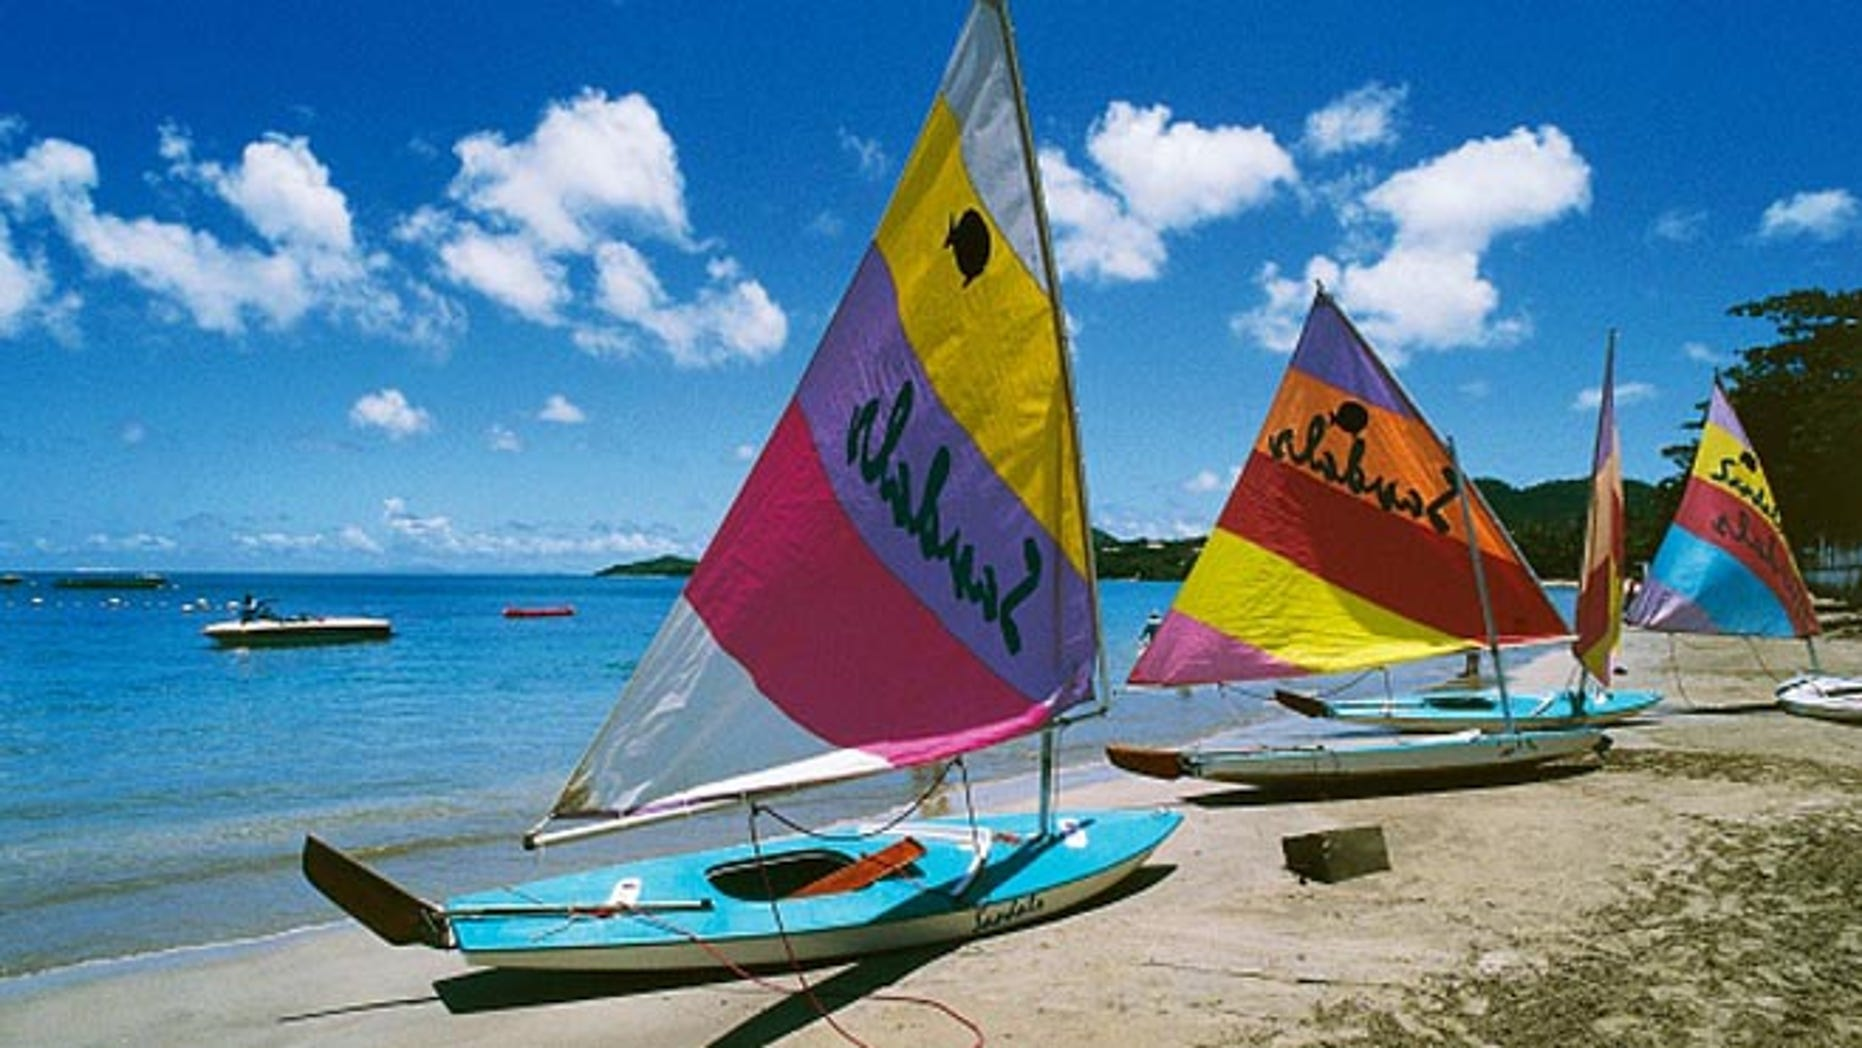 UNITED STATES - AUGUST 02: Small sailing boats on a beach, US Virgin islands, United States of America. (Photo by DeAgostini/Getty Images)